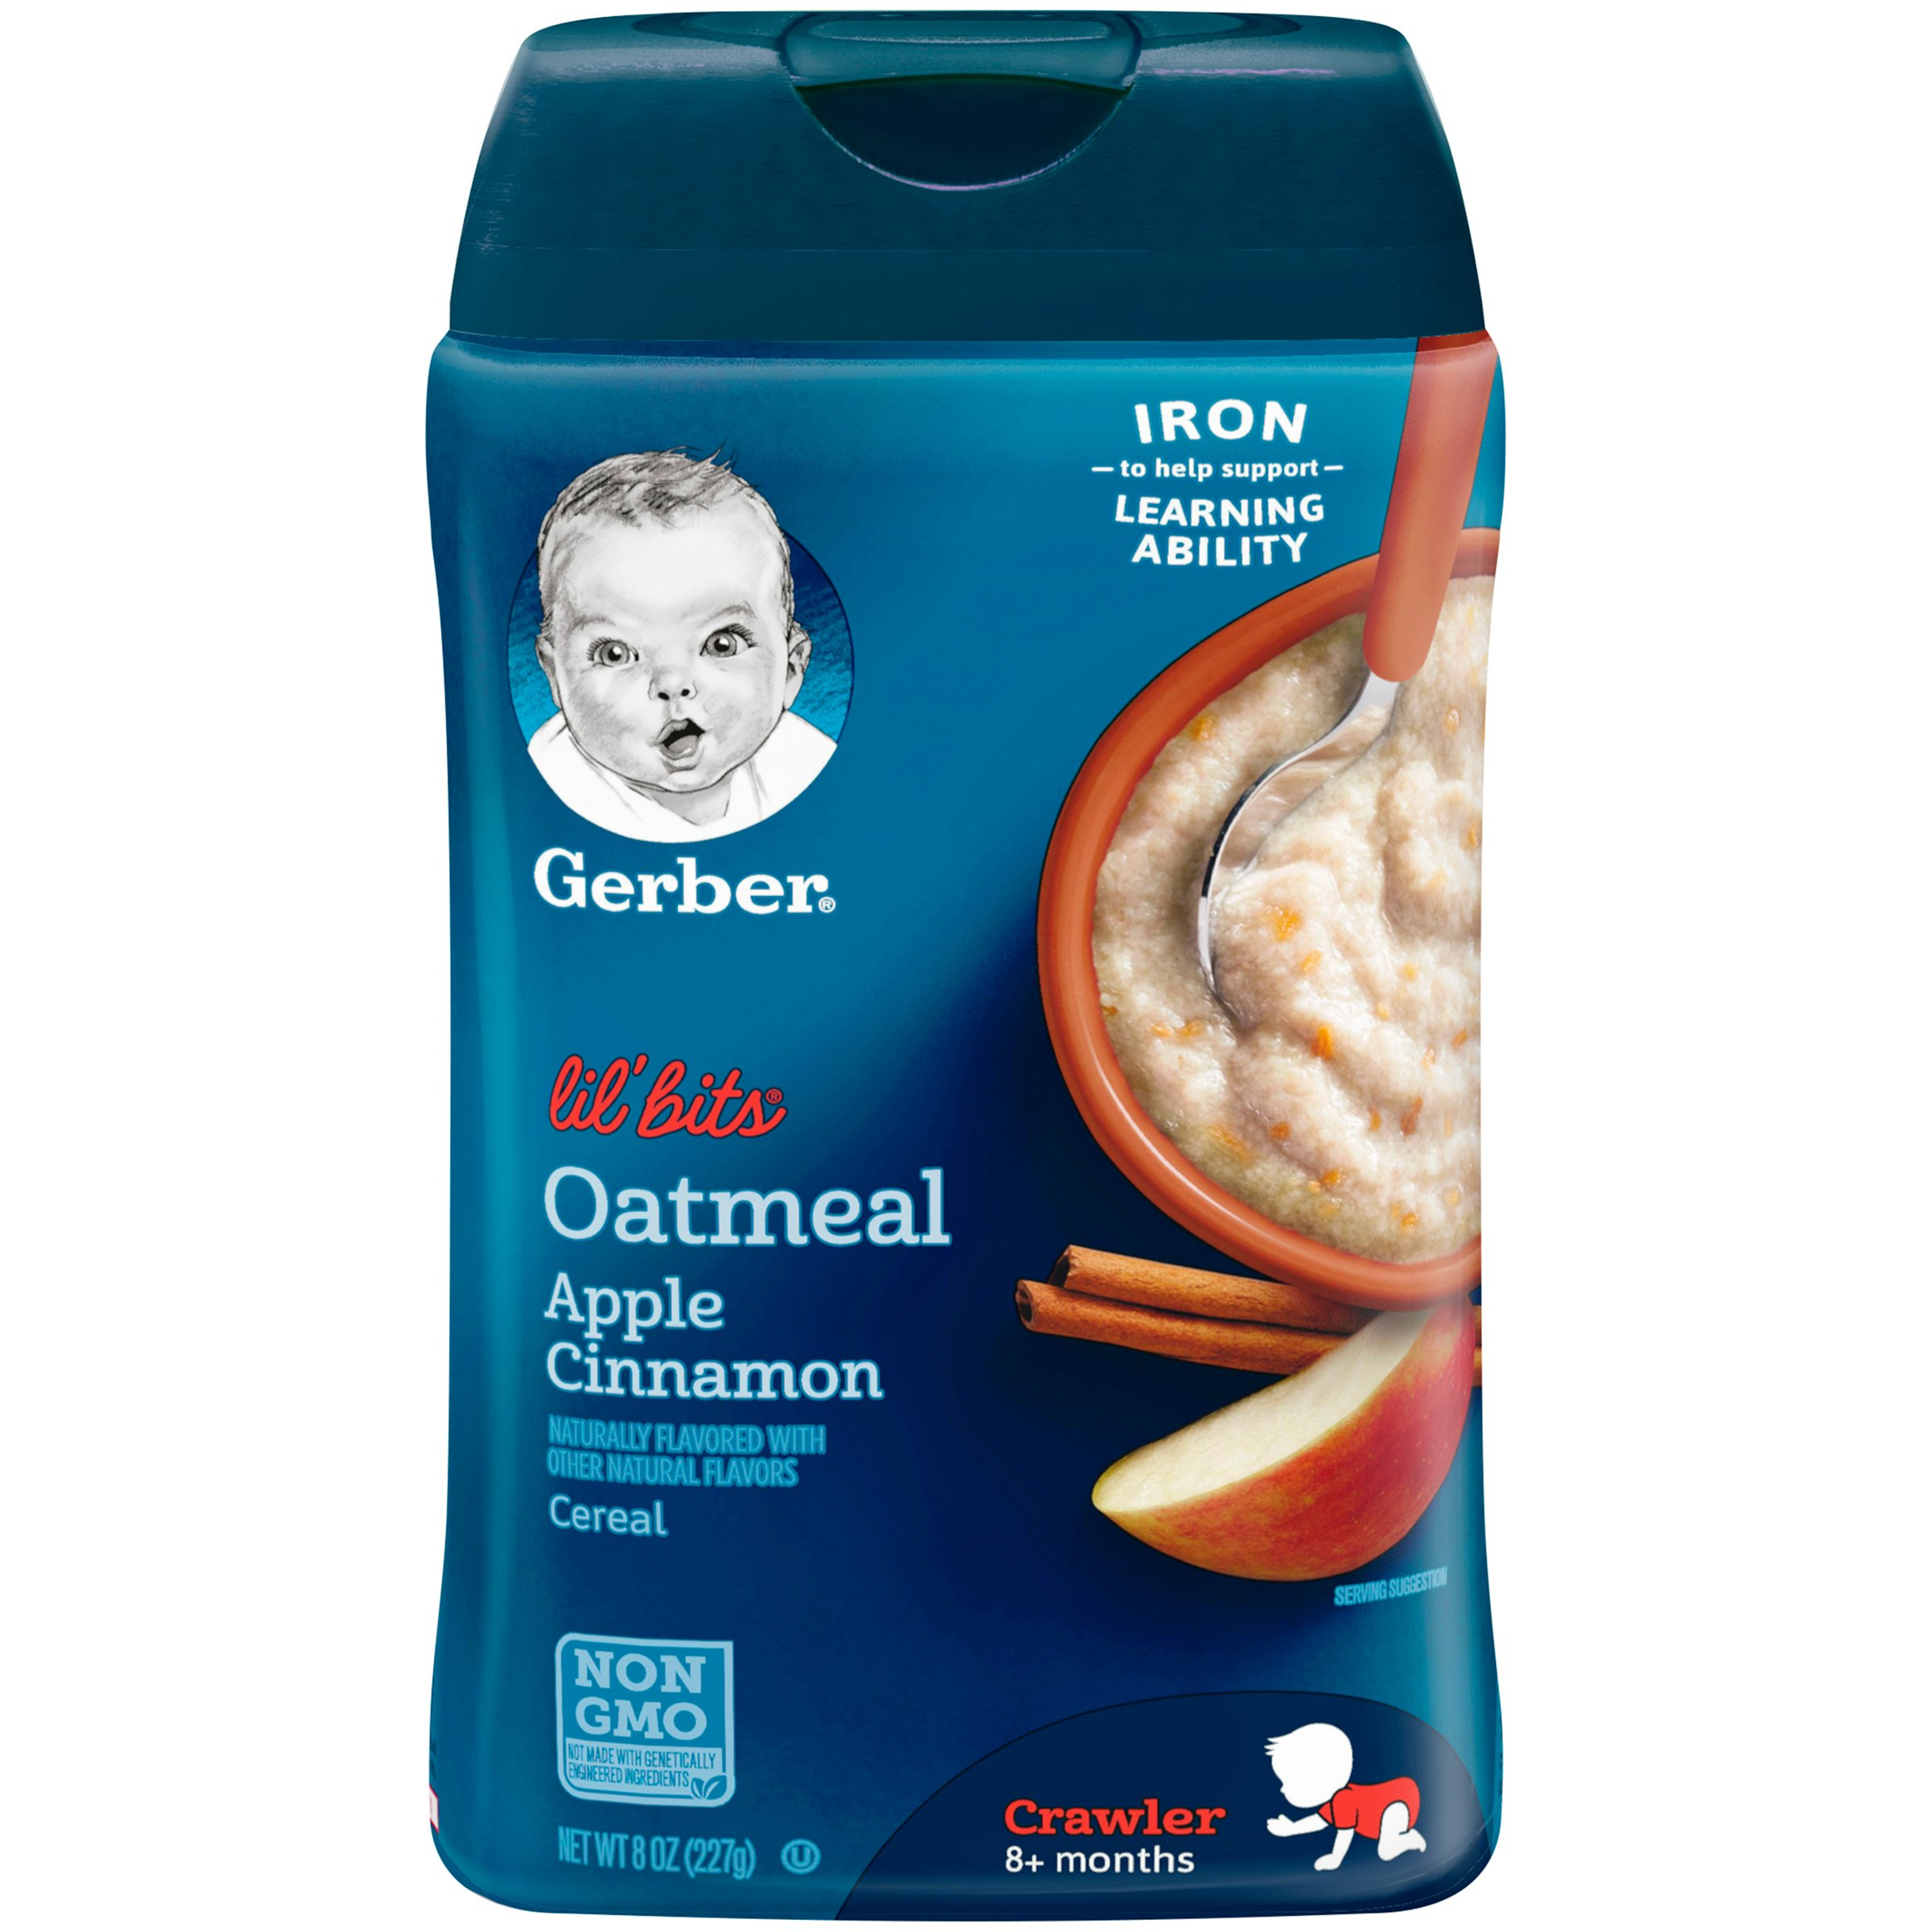 Gerber Baby Cereal, Lil' Bits Oatmeal Apple Cinnamon, 8 Ounce (Pack of 6) by Gerber Baby Cereal (Image #1)